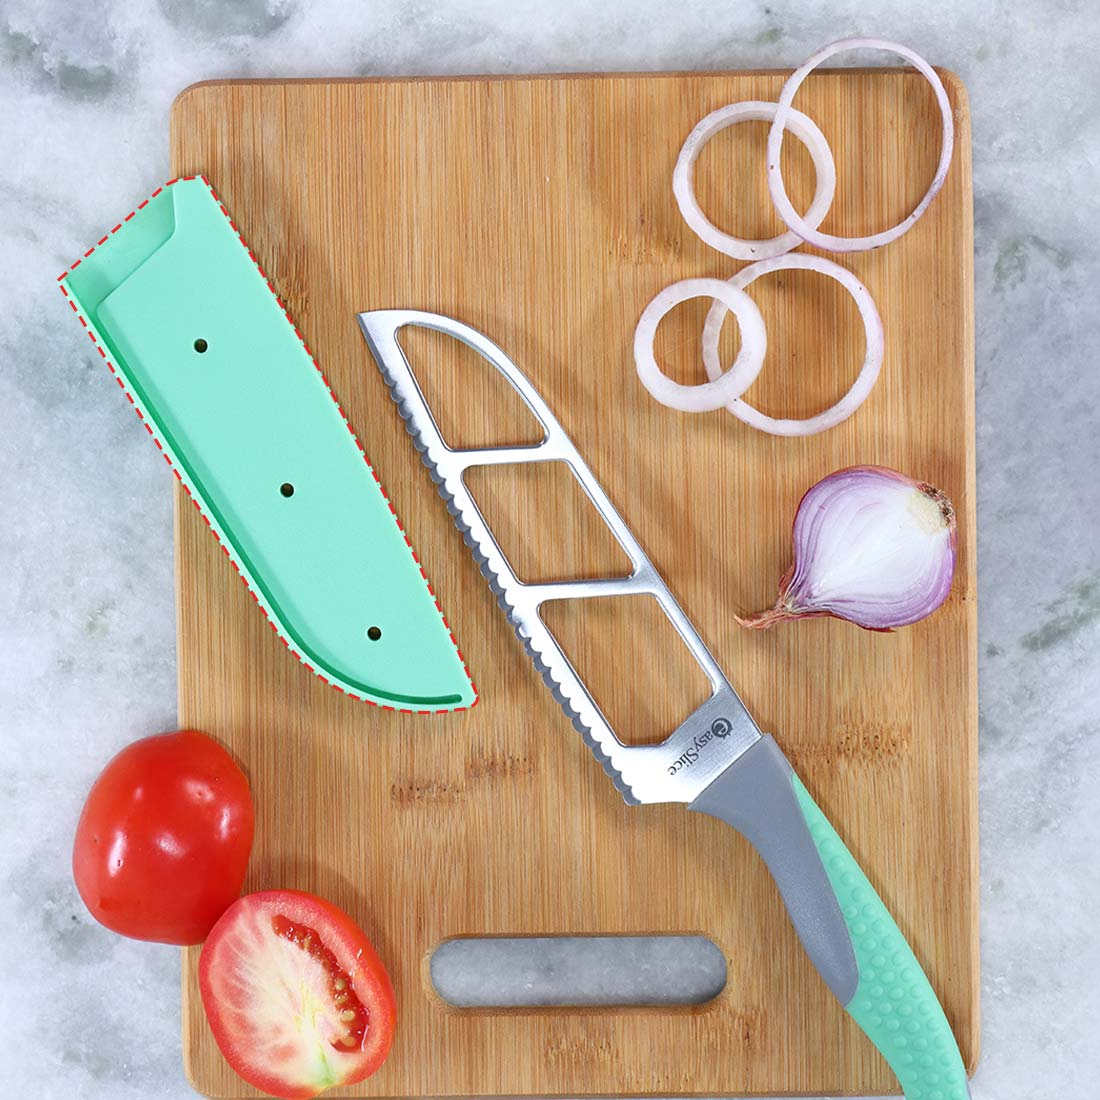 Easy Slice knife 6 inches - Green